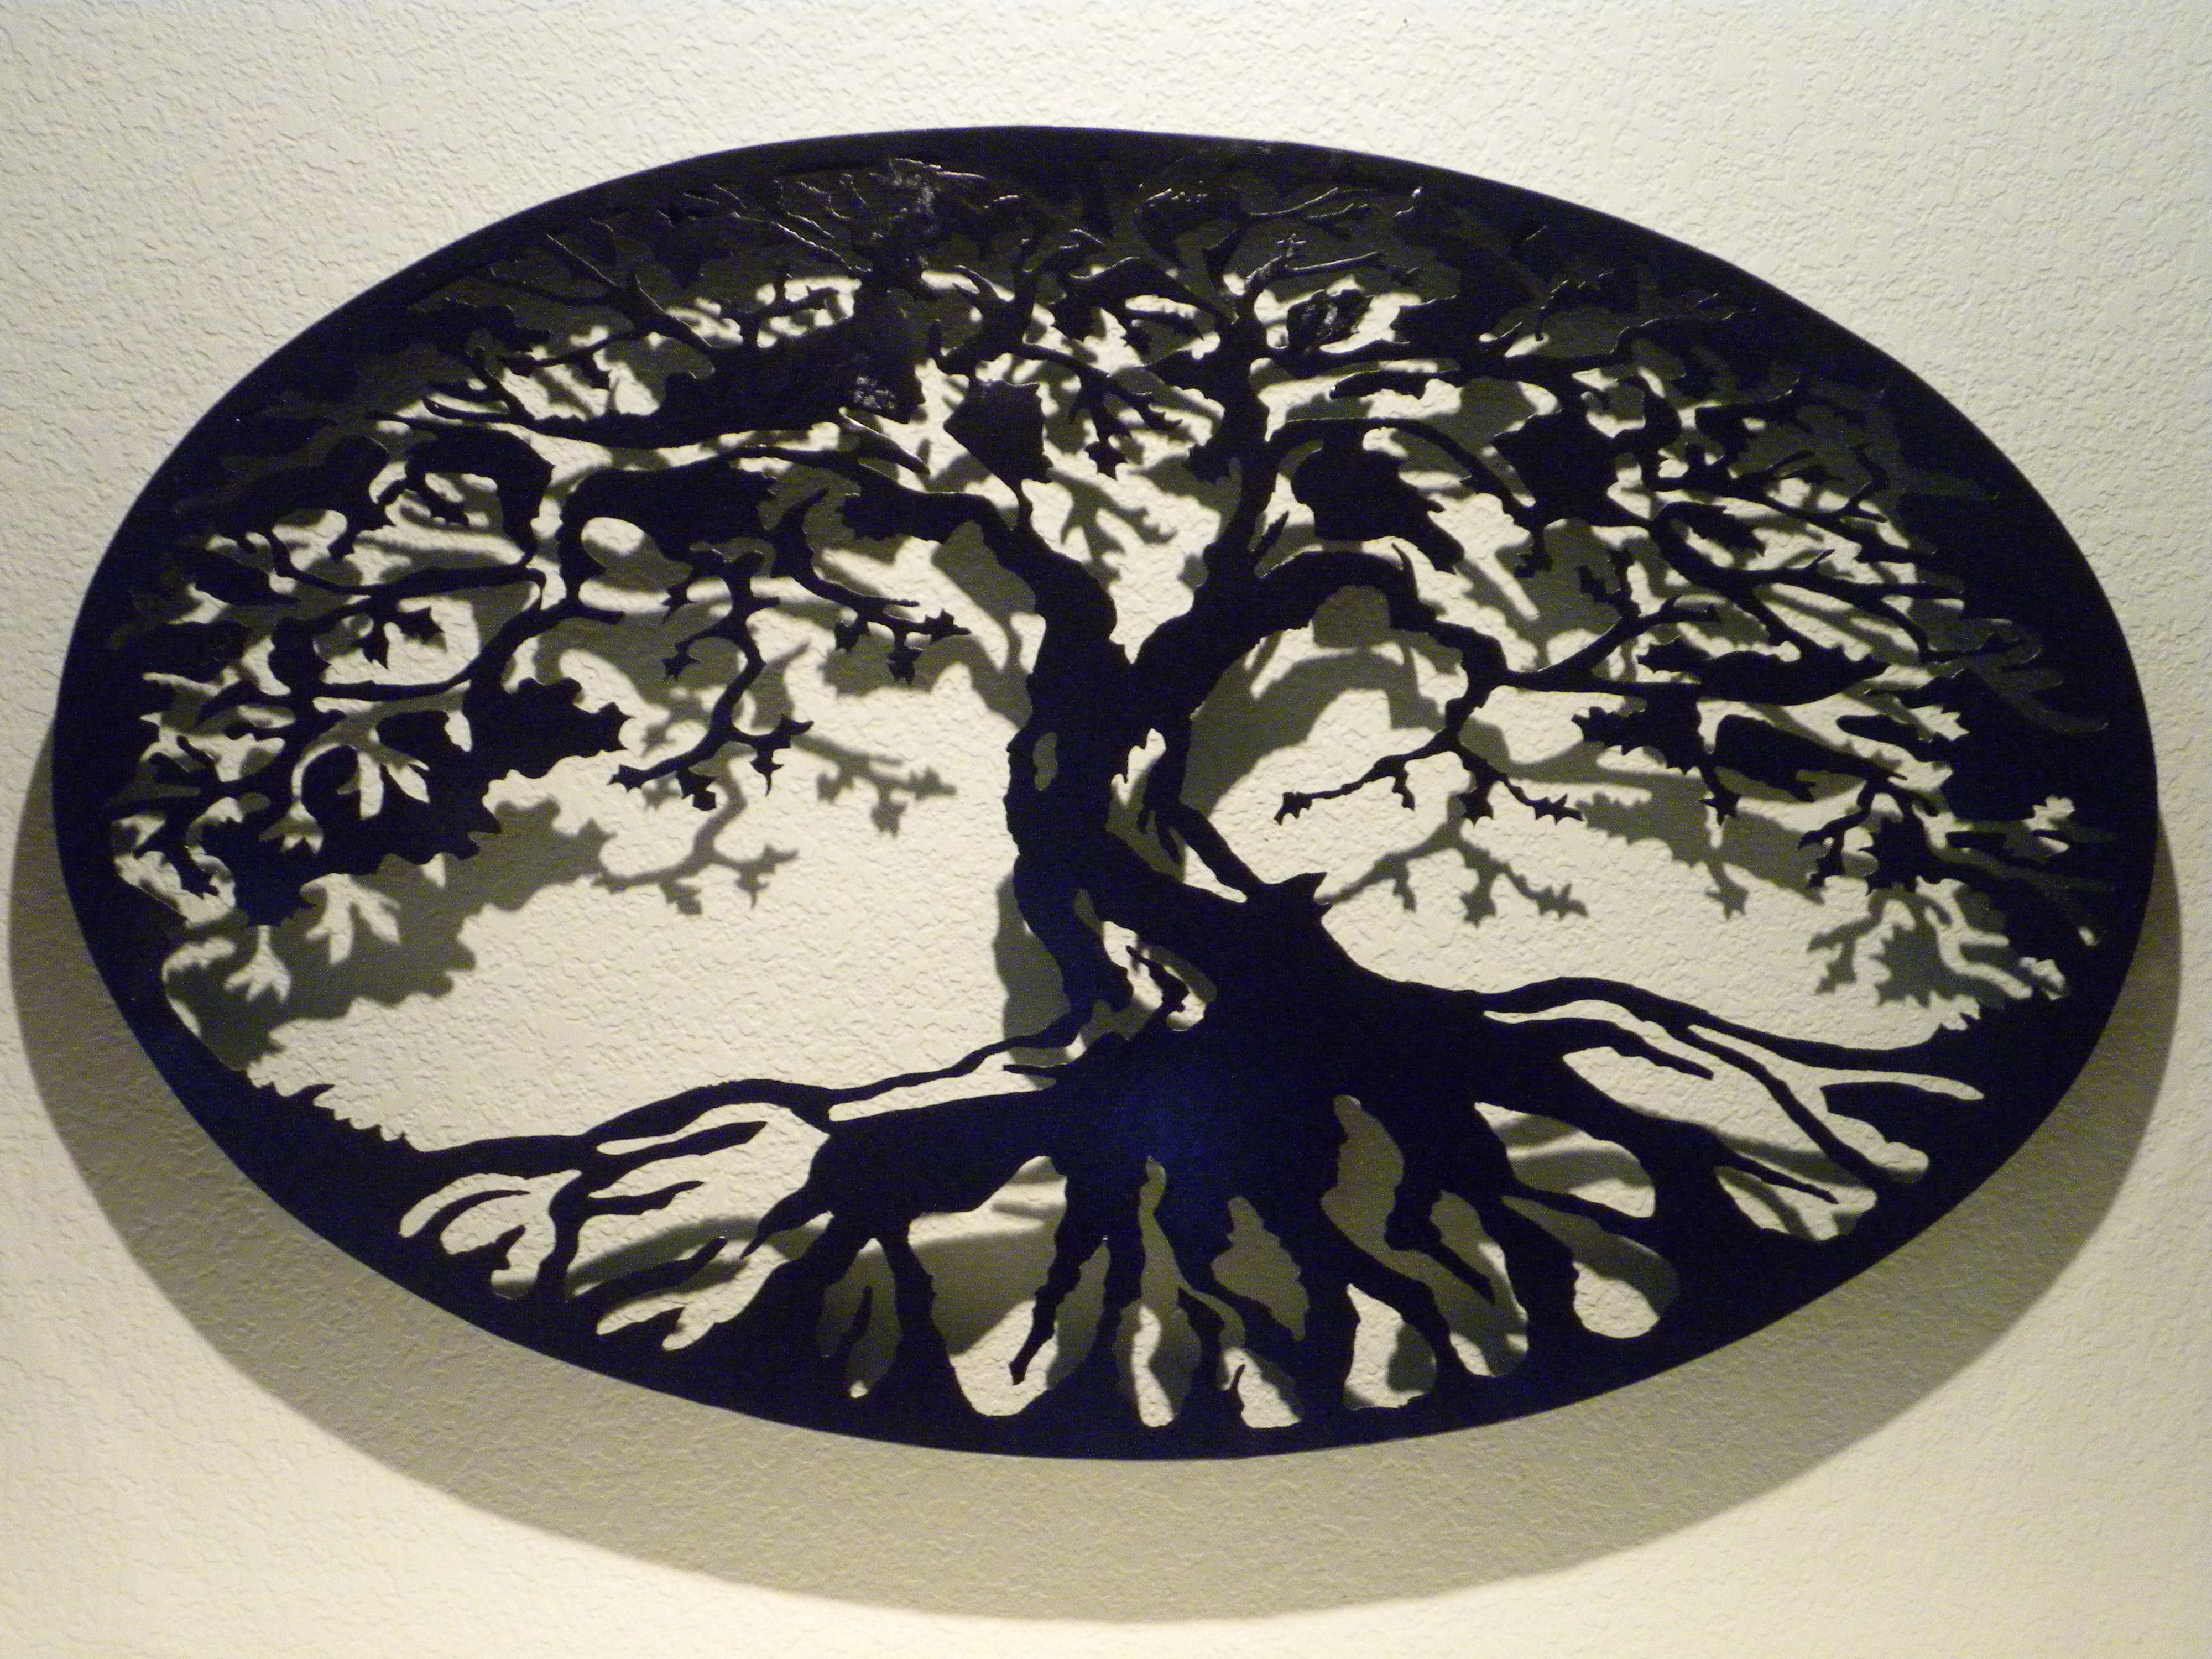 Tree Of Life Wall Art In Well Known Buy A Custom Oval Tree Of Life Metal Wall Art, Made To Order From (View 7 of 15)